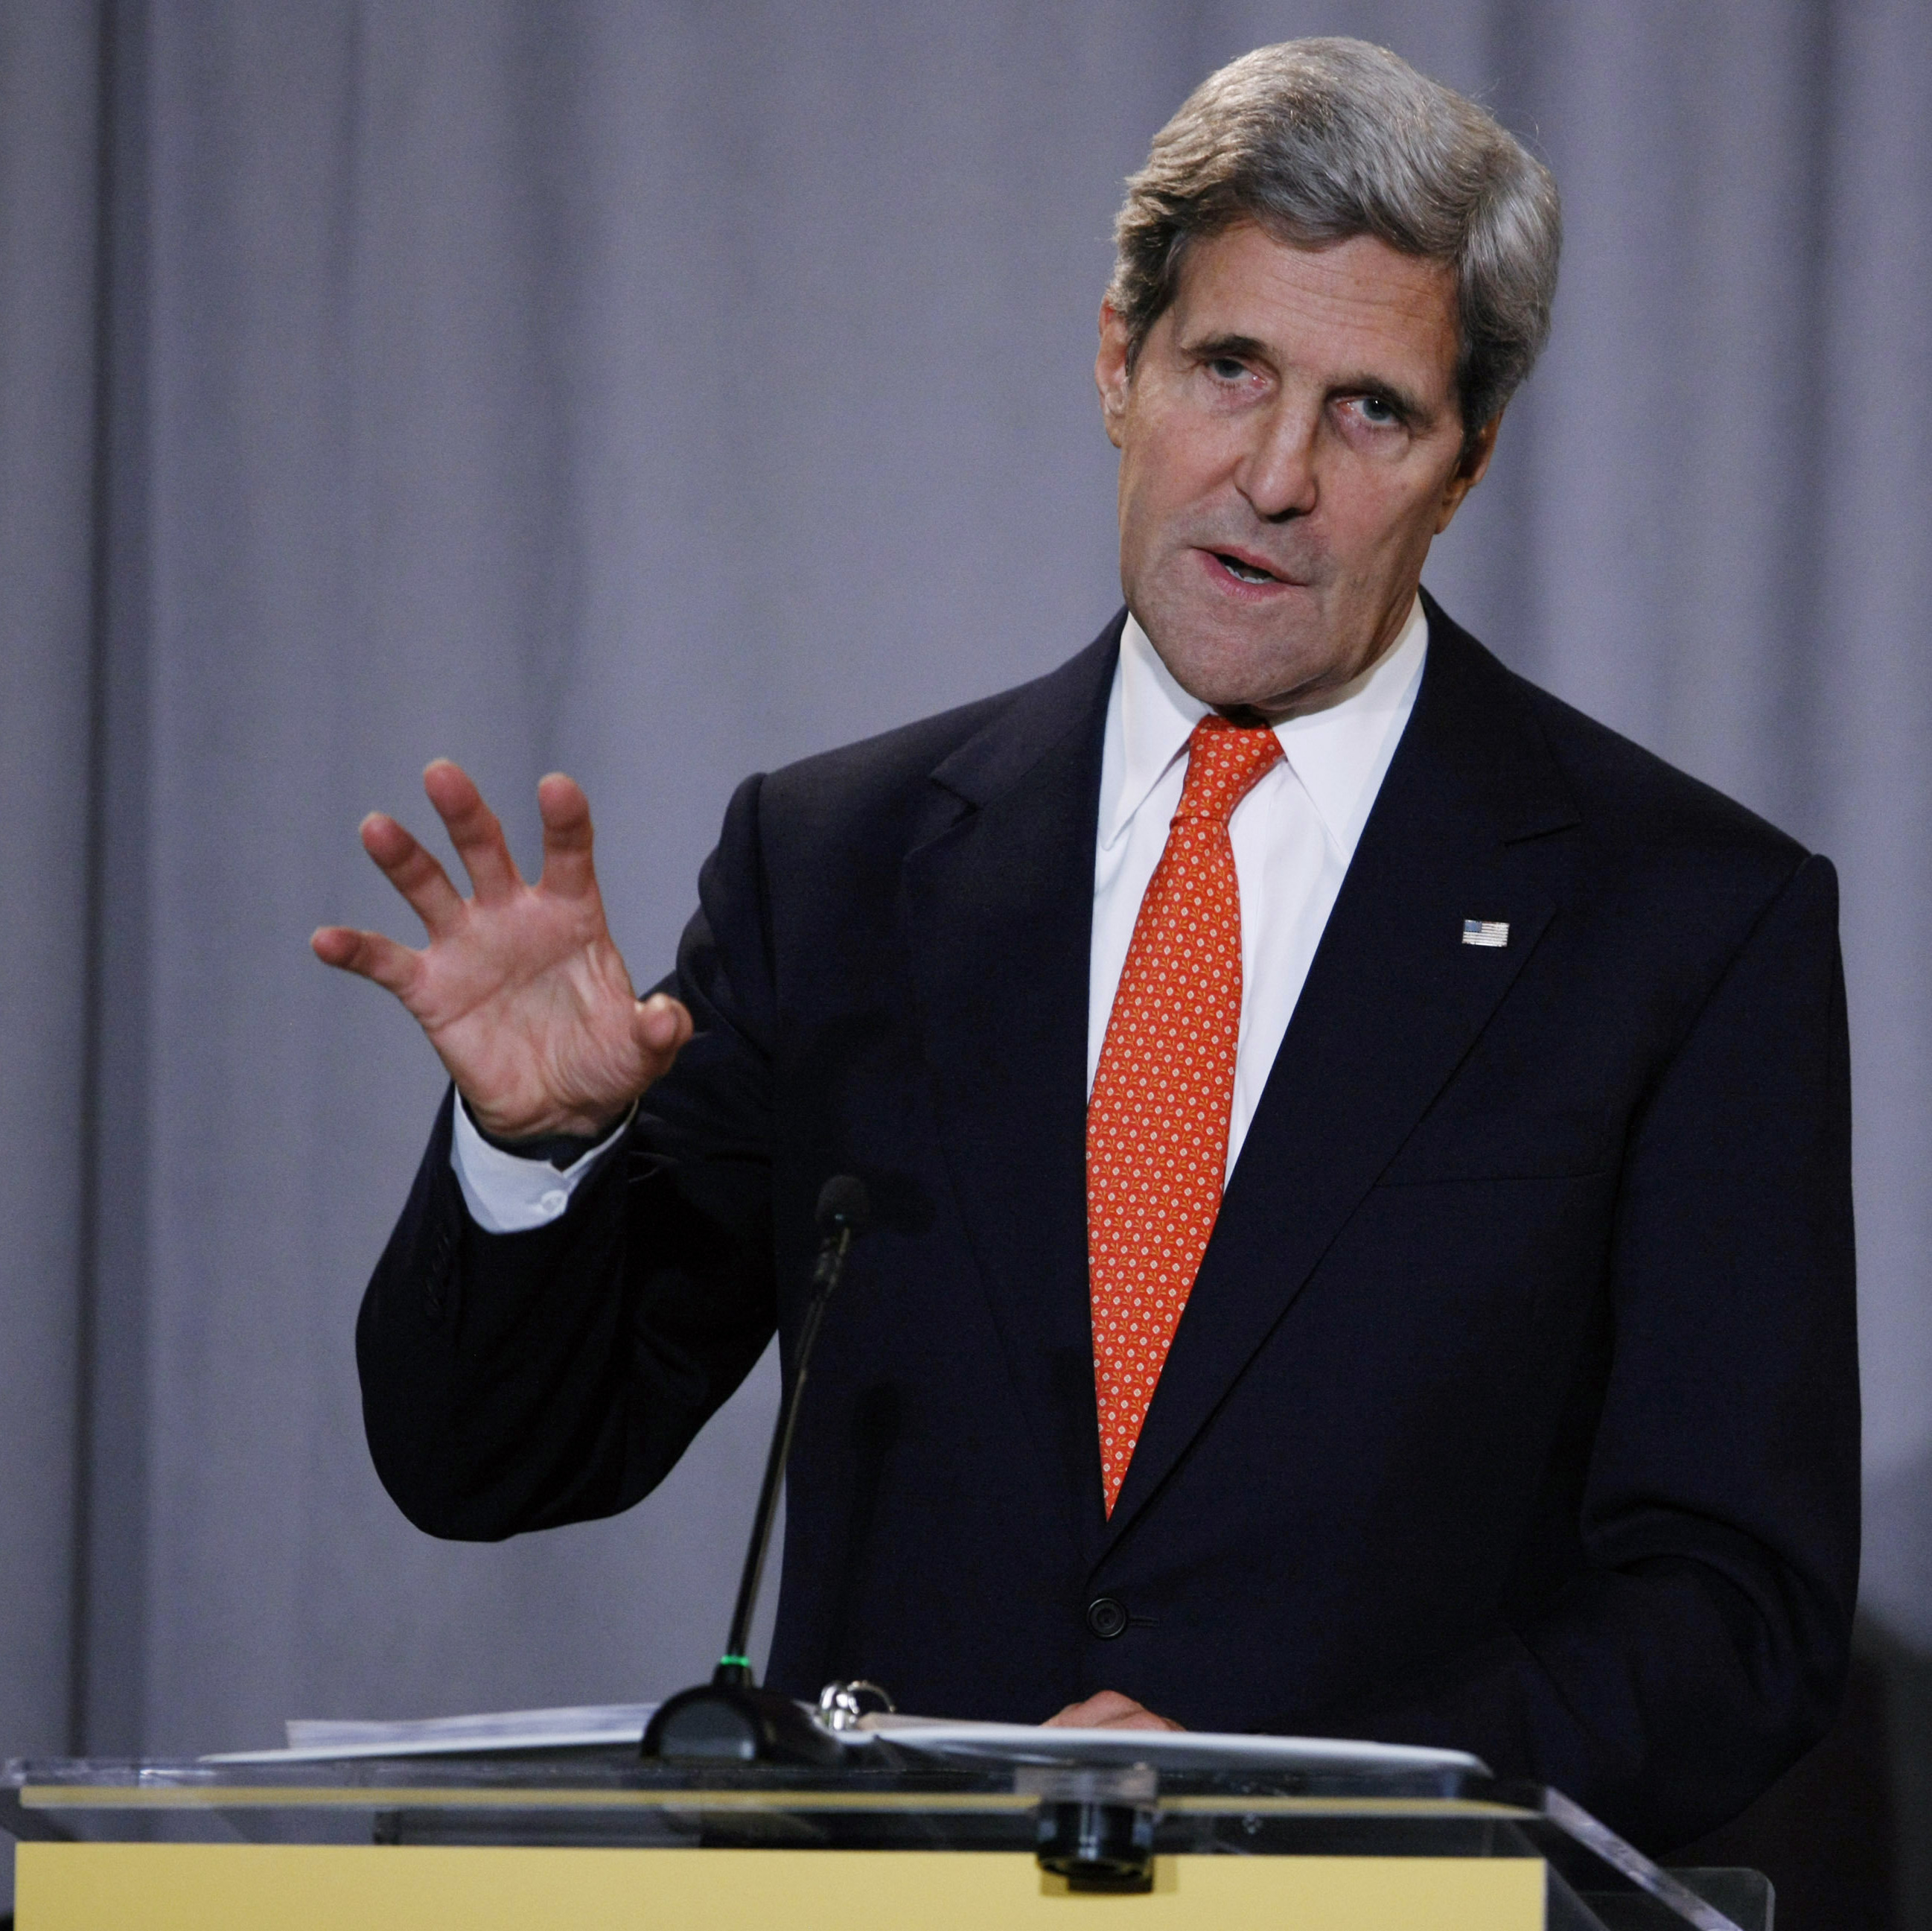 U.S. Spying Efforts Sometimes 'Reached Too Far,' Kerry Says